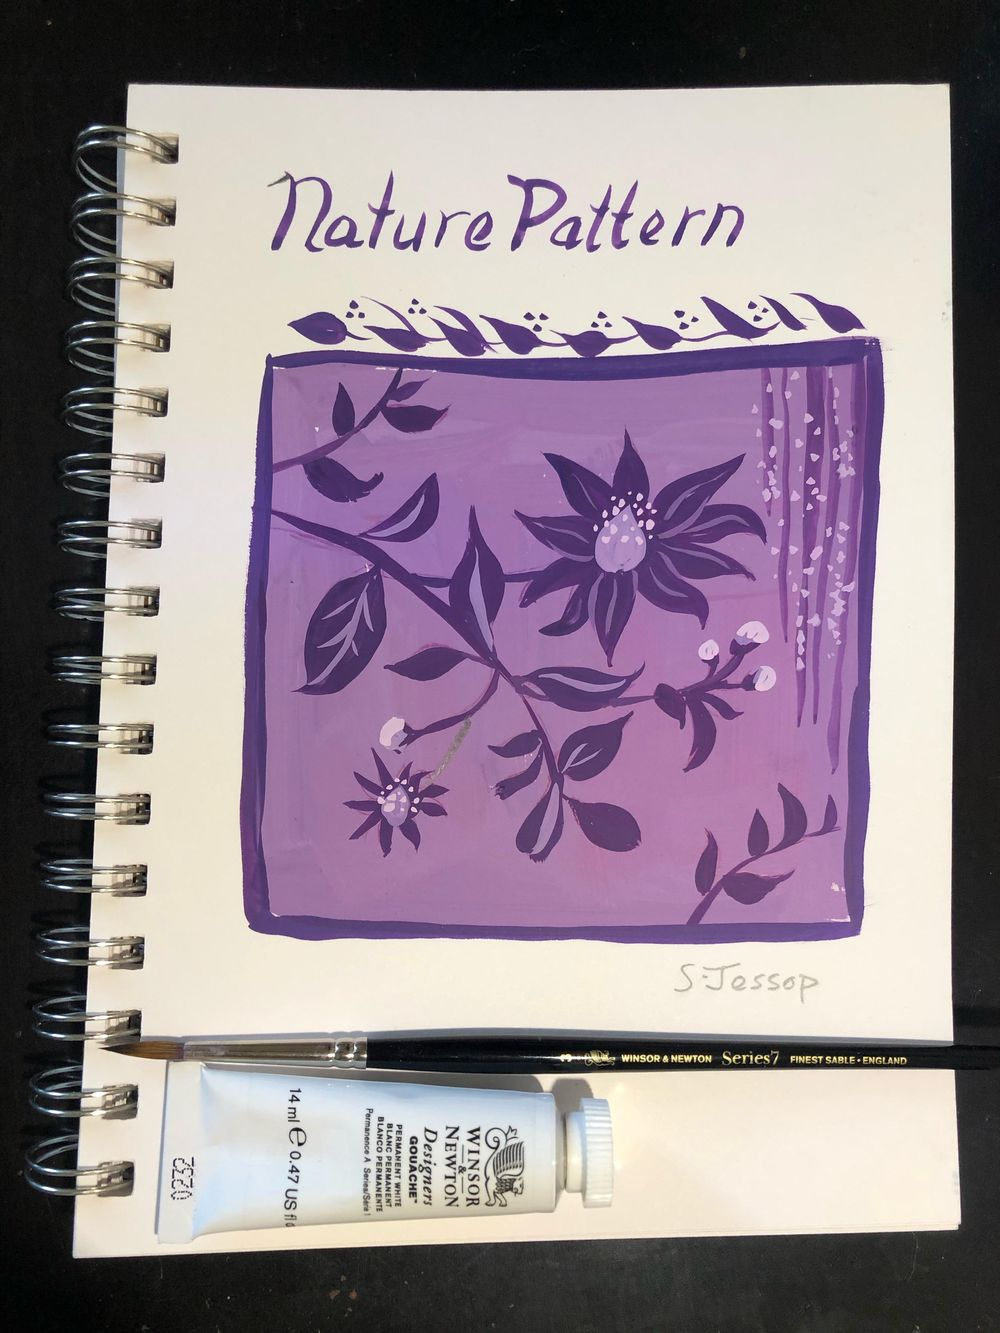 Nature Pattern - image 1 - student project